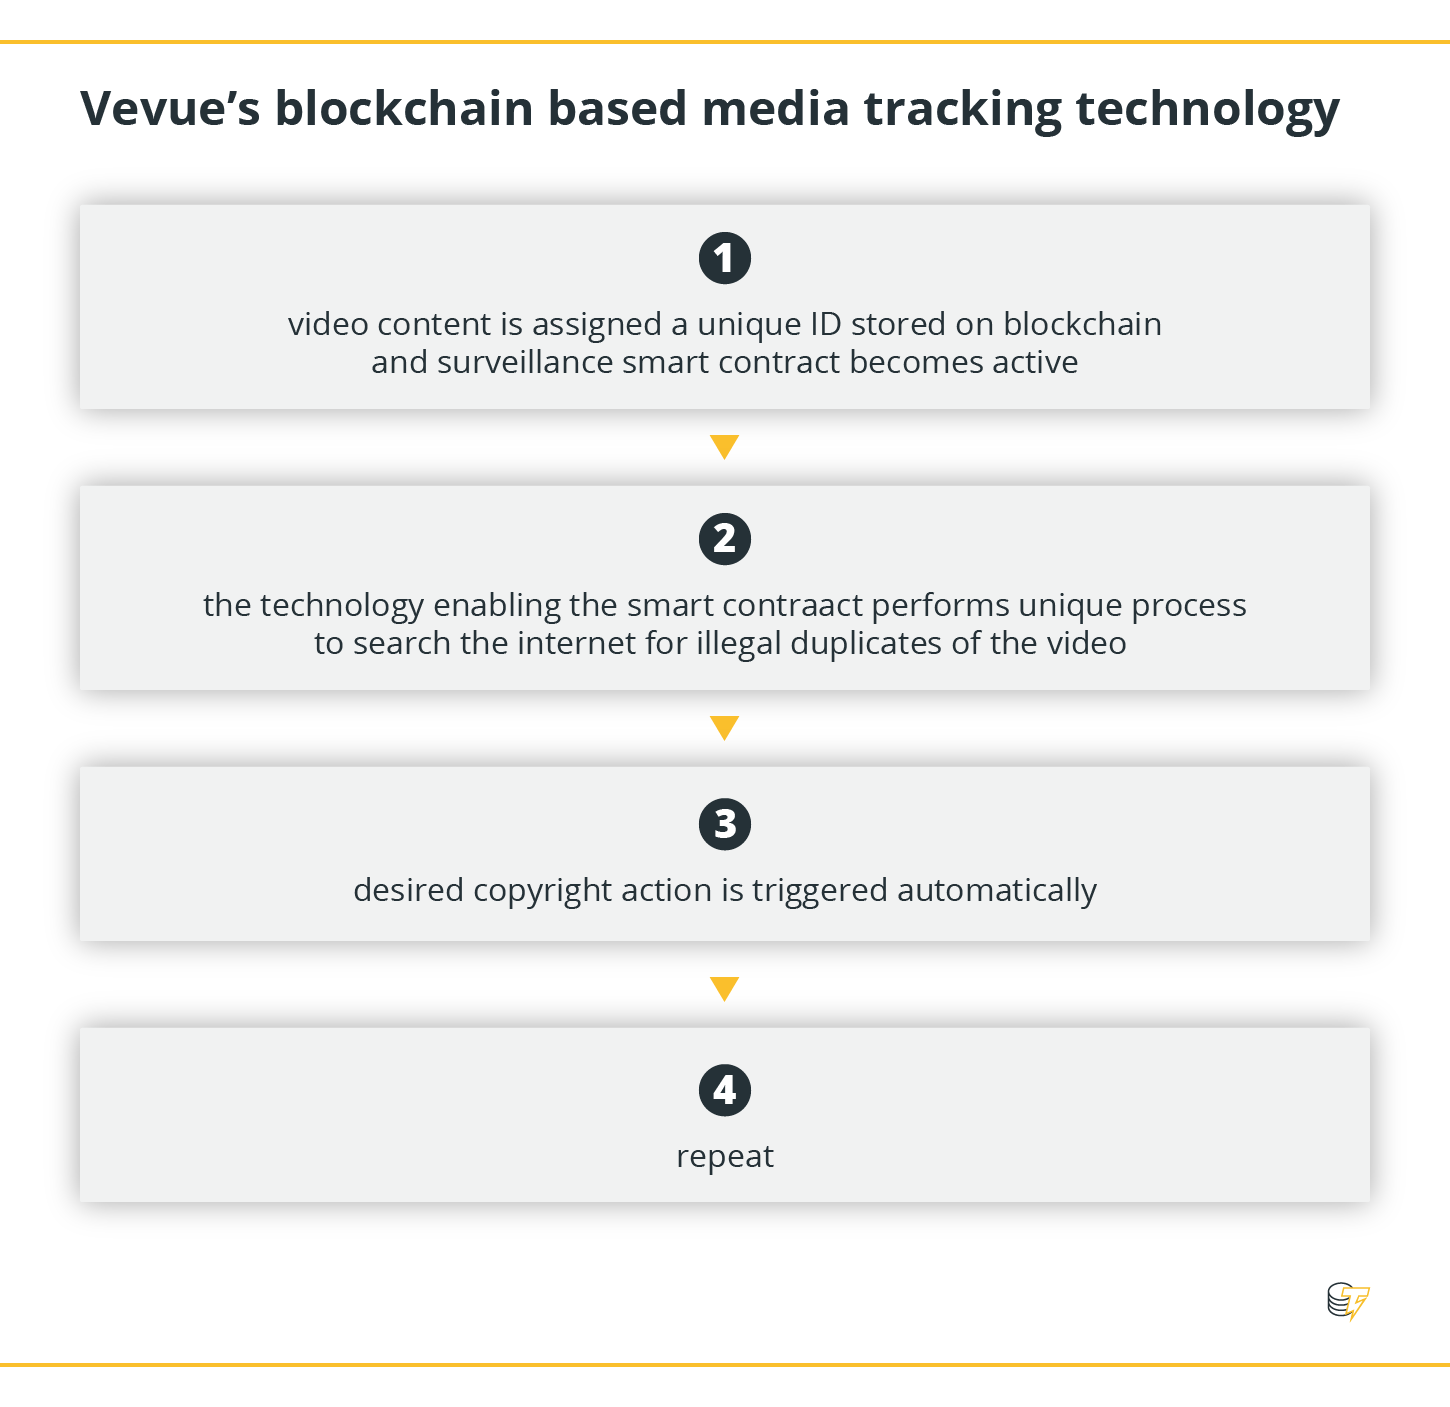 Vevue's blockchain based media tracking technology